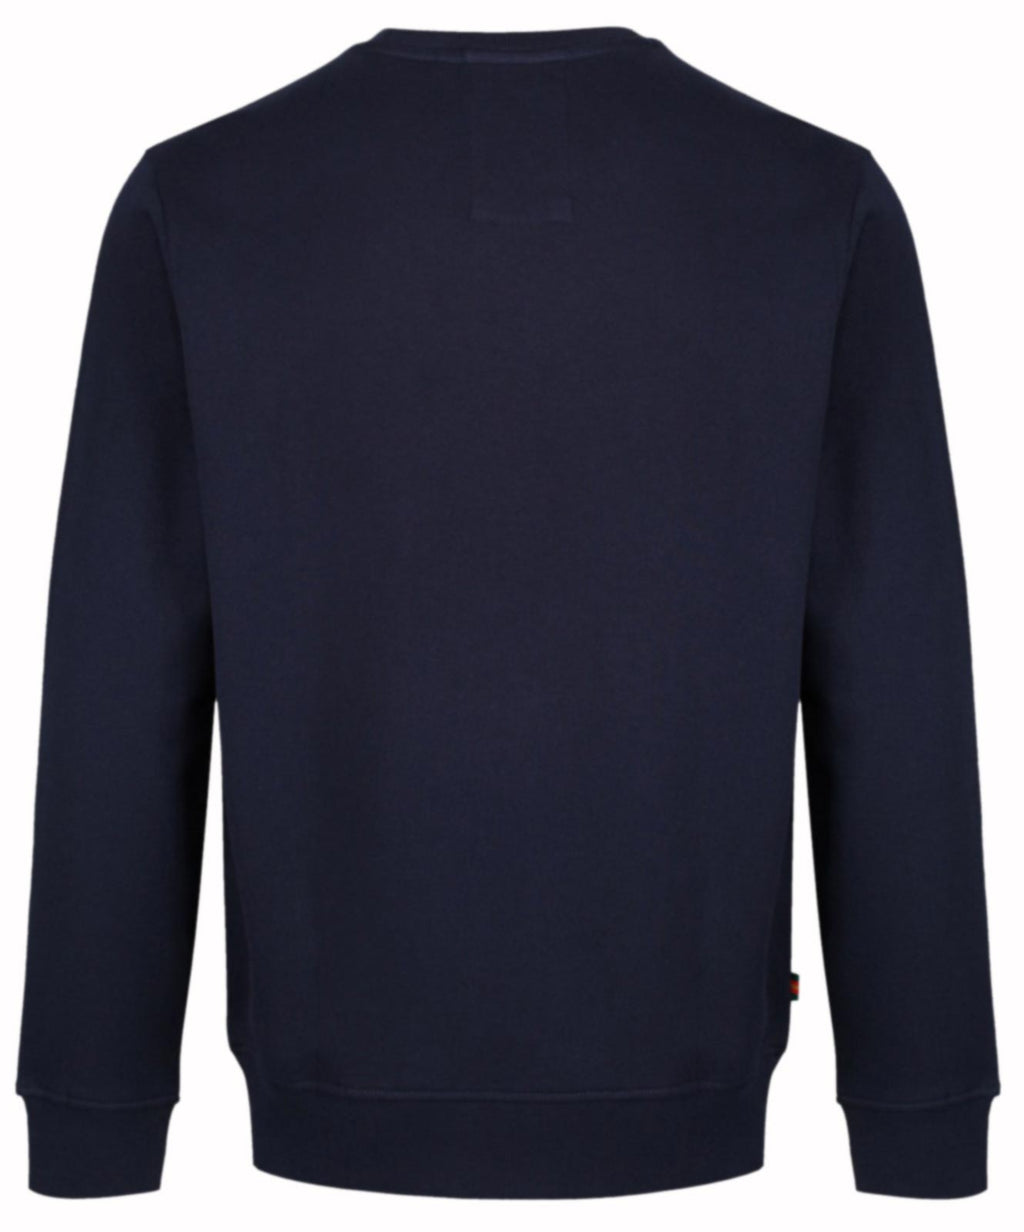 Luke 1977 London Sweatshirt Navy